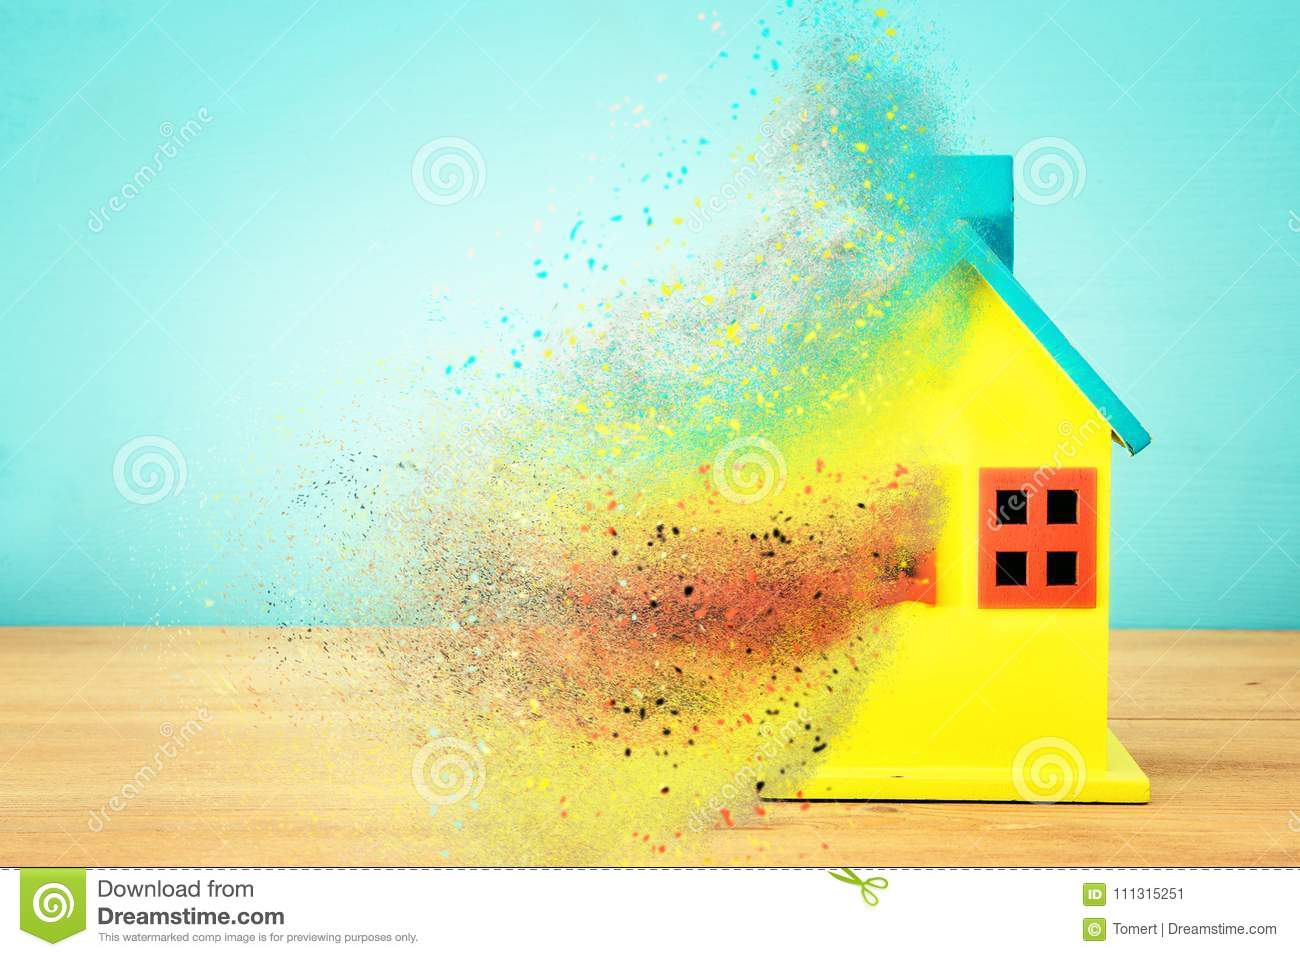 Image of wooden colorful house model. Real estate and uncertainty concept.